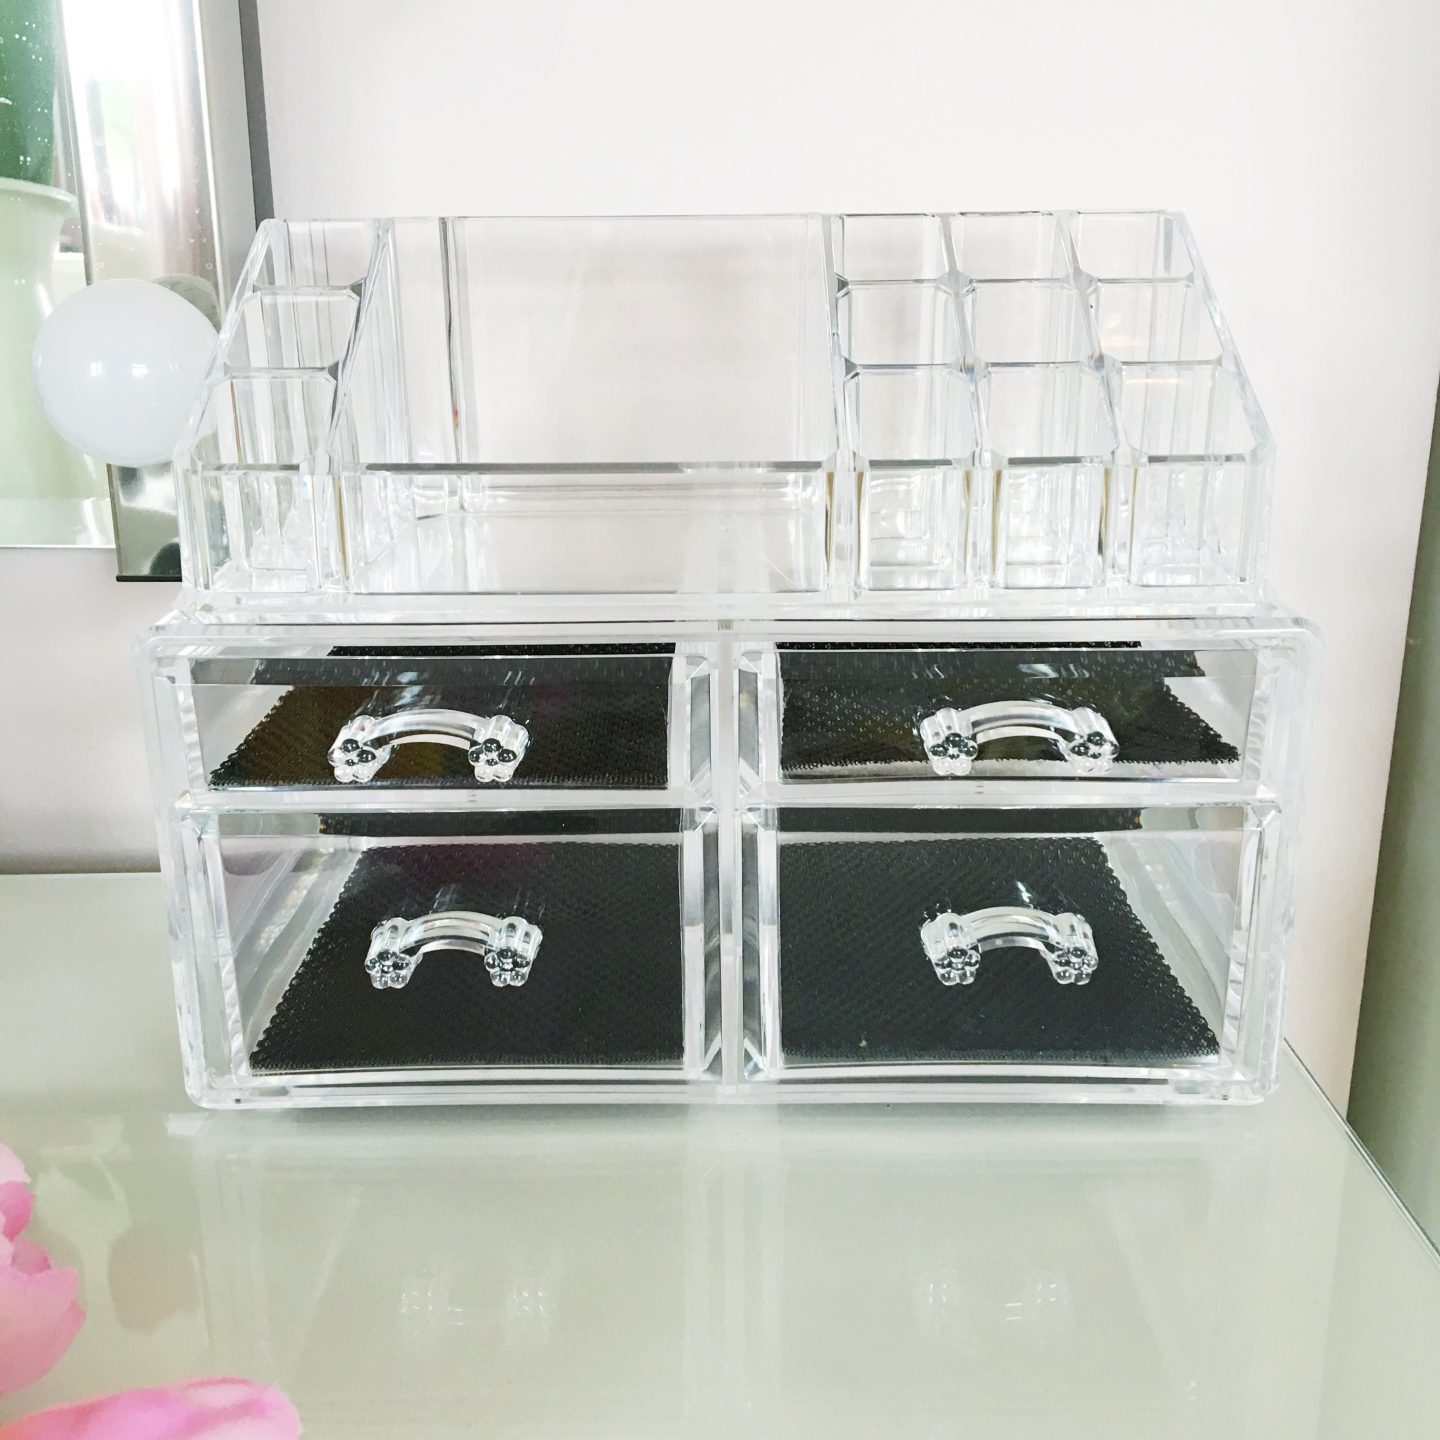 Songmics Acrylic Makeup Storage Review | Empty